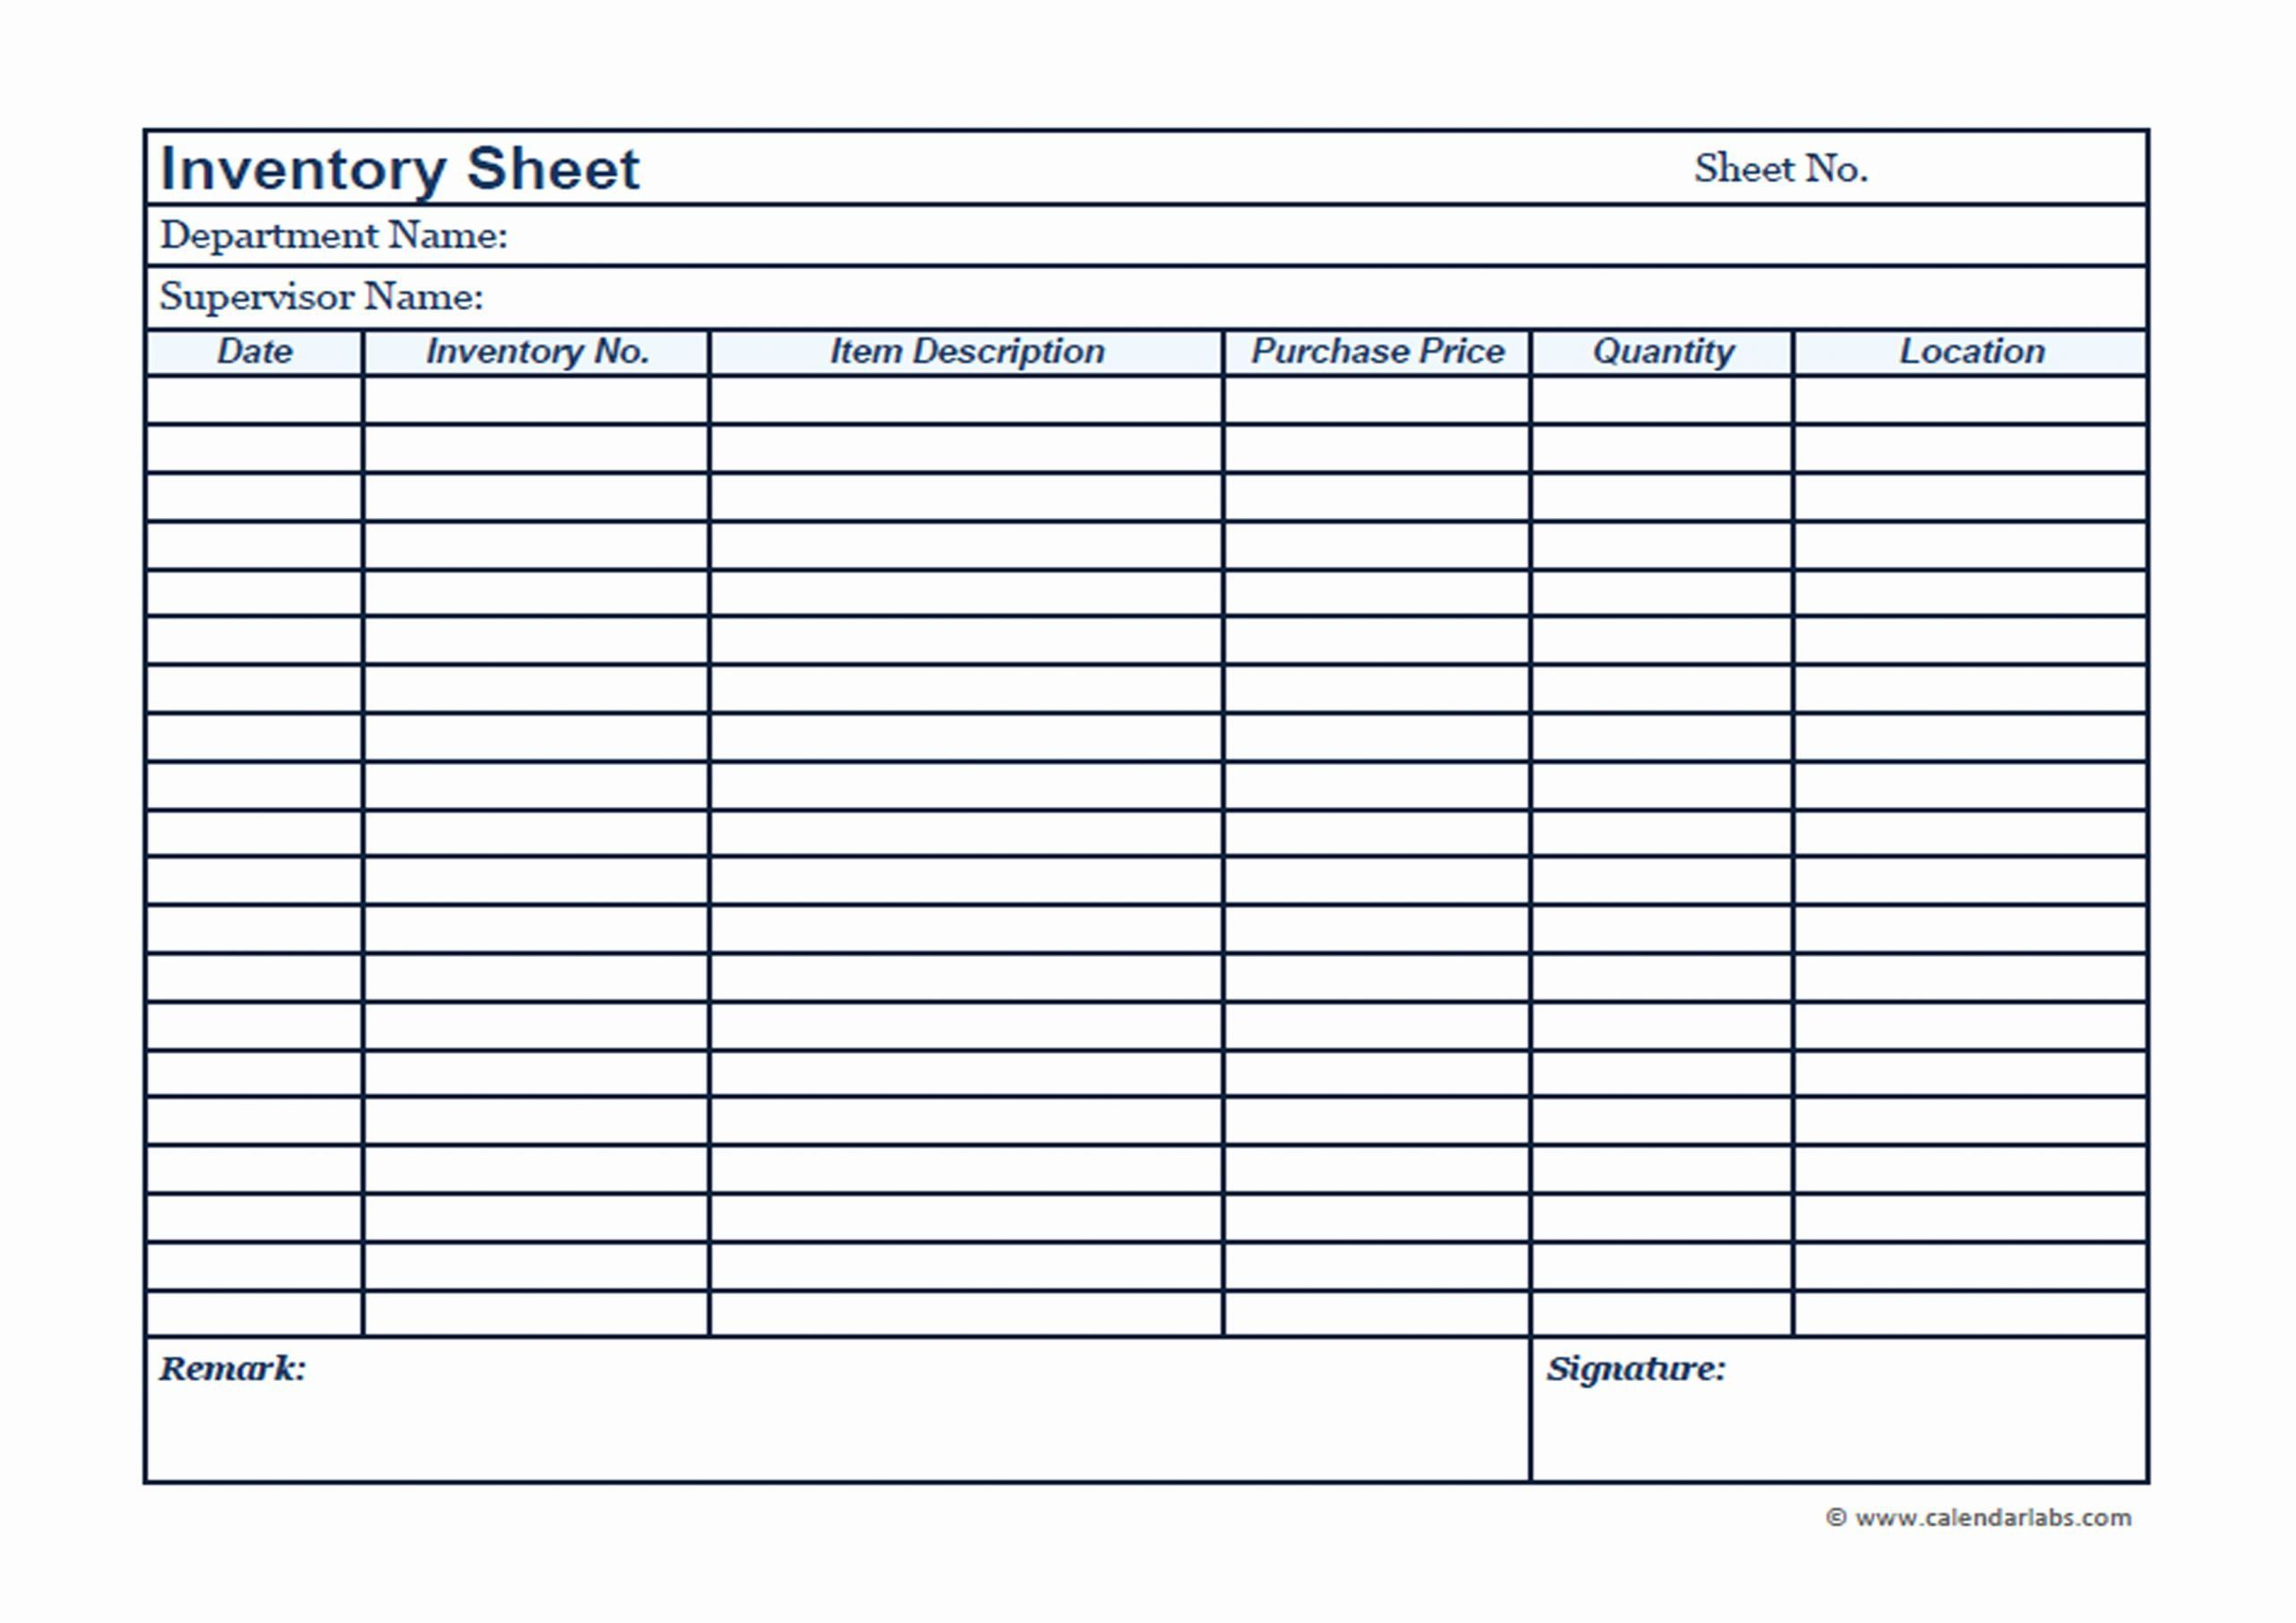 Printable Inventory List Template Inspirational Business Inventory Template Free Printable Templates List Template Templates Spreadsheet Template